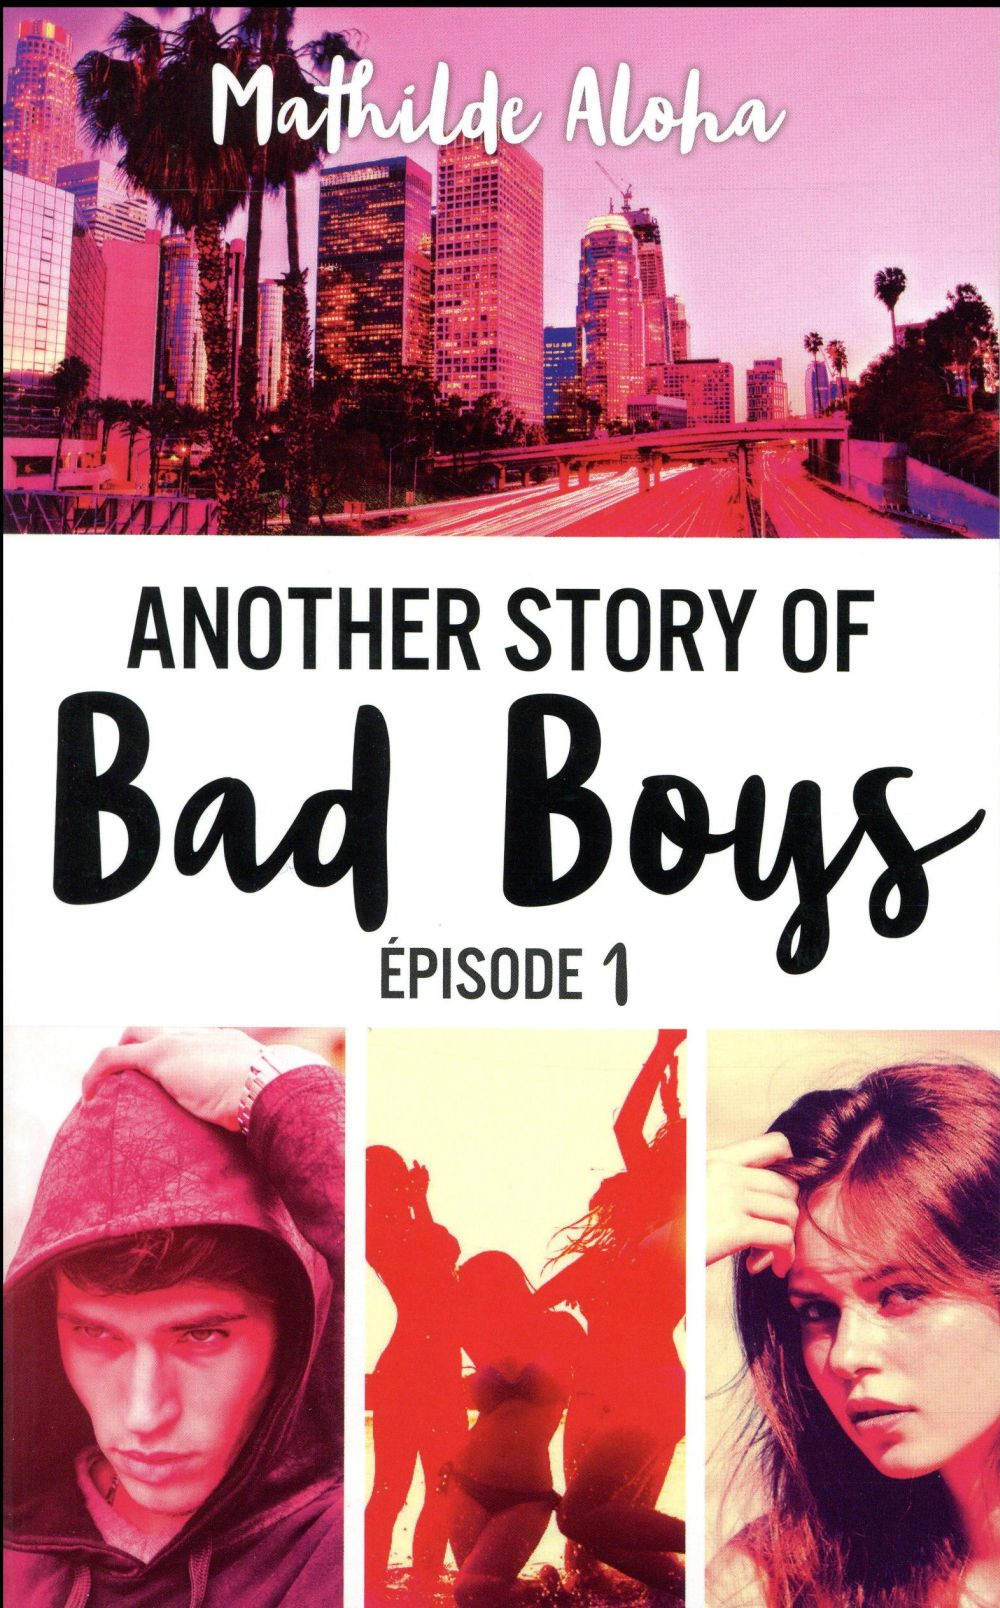 ANOTHER STORY OF BAD BOYS - TOME 1 Aloha Mathilde Hachette romans